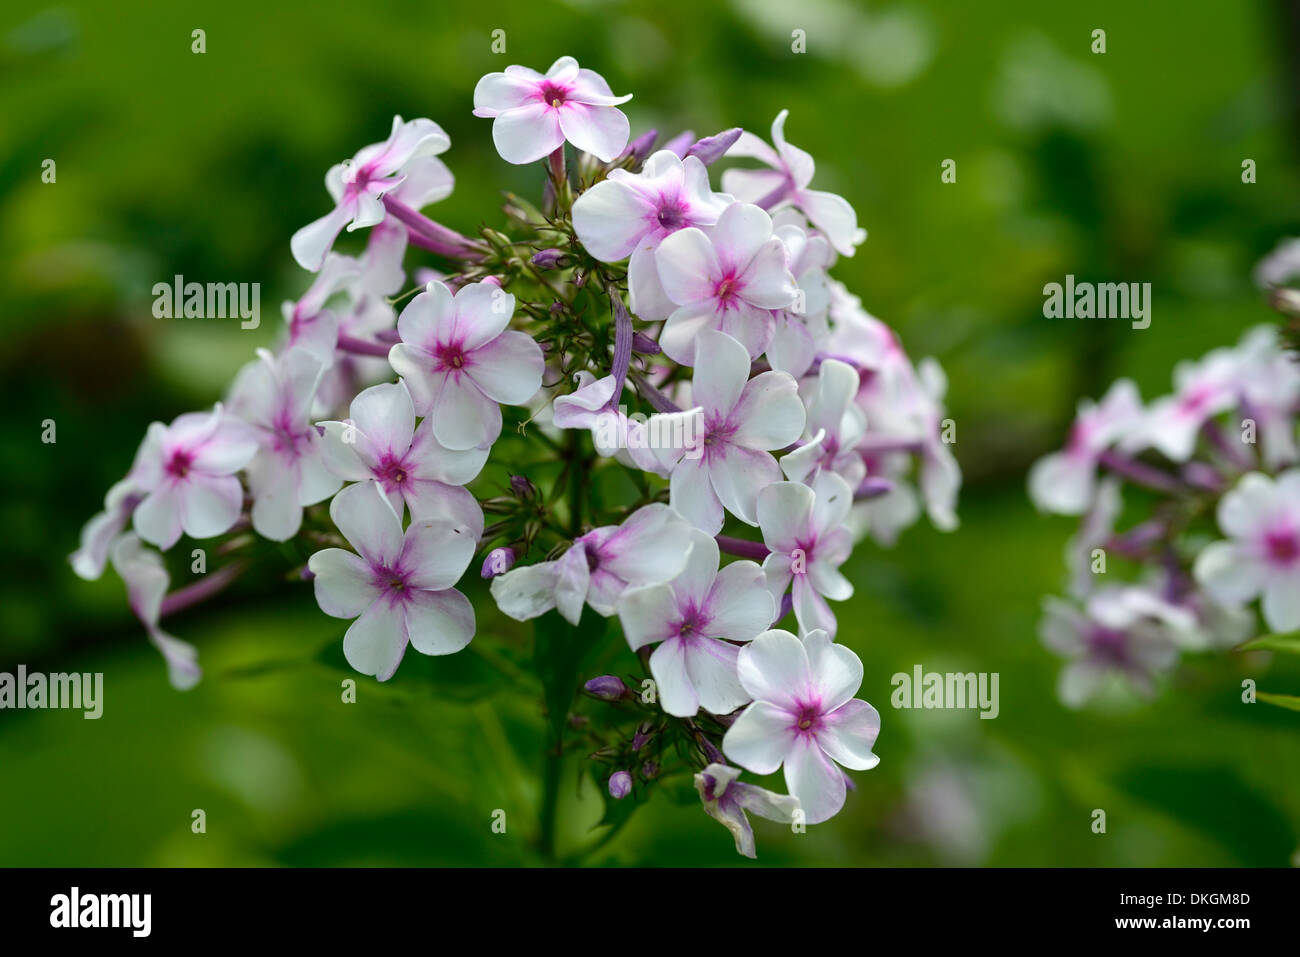 Phlox paniculata white flowers pink eye perennial stock photo stock photo phlox paniculata white flowers pink eye perennial dhlflorist Image collections